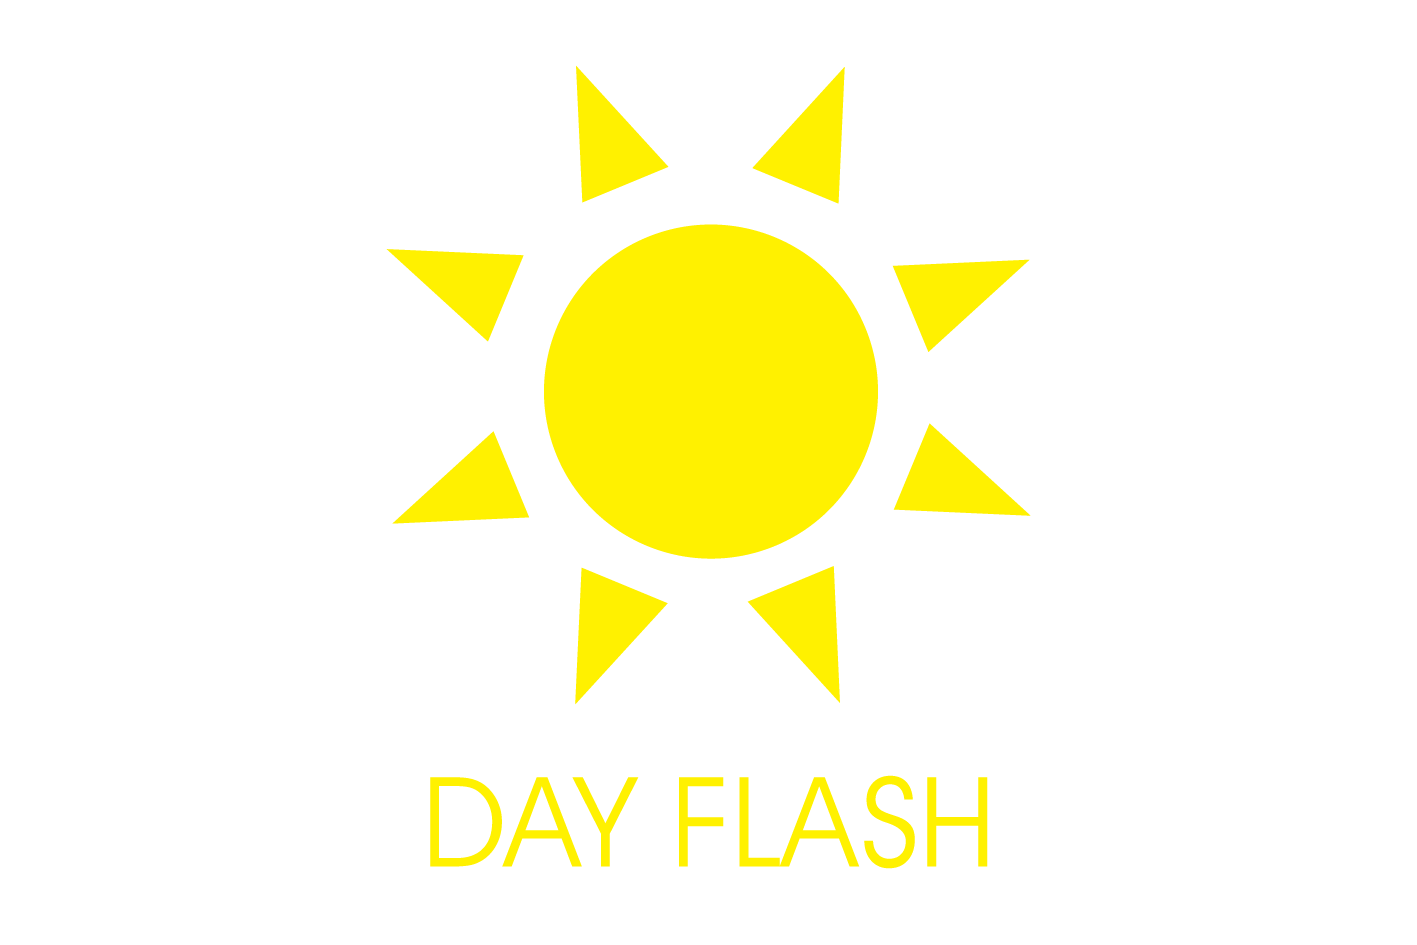 DAY FLASH MODE